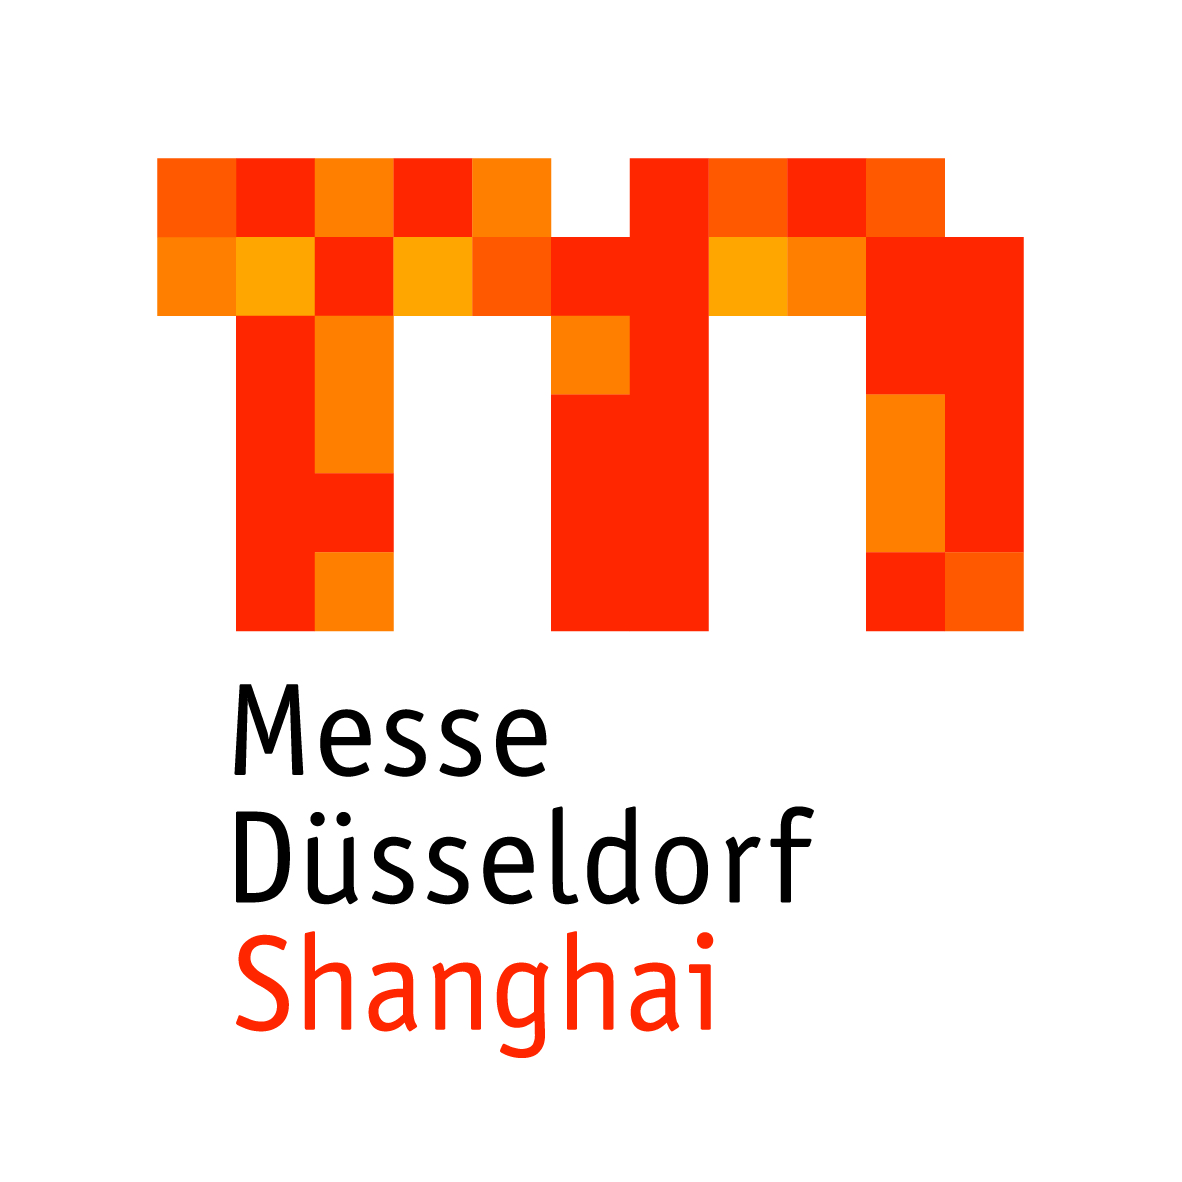 Messe Düsseldorf (Shanghai) Co., Ltd.